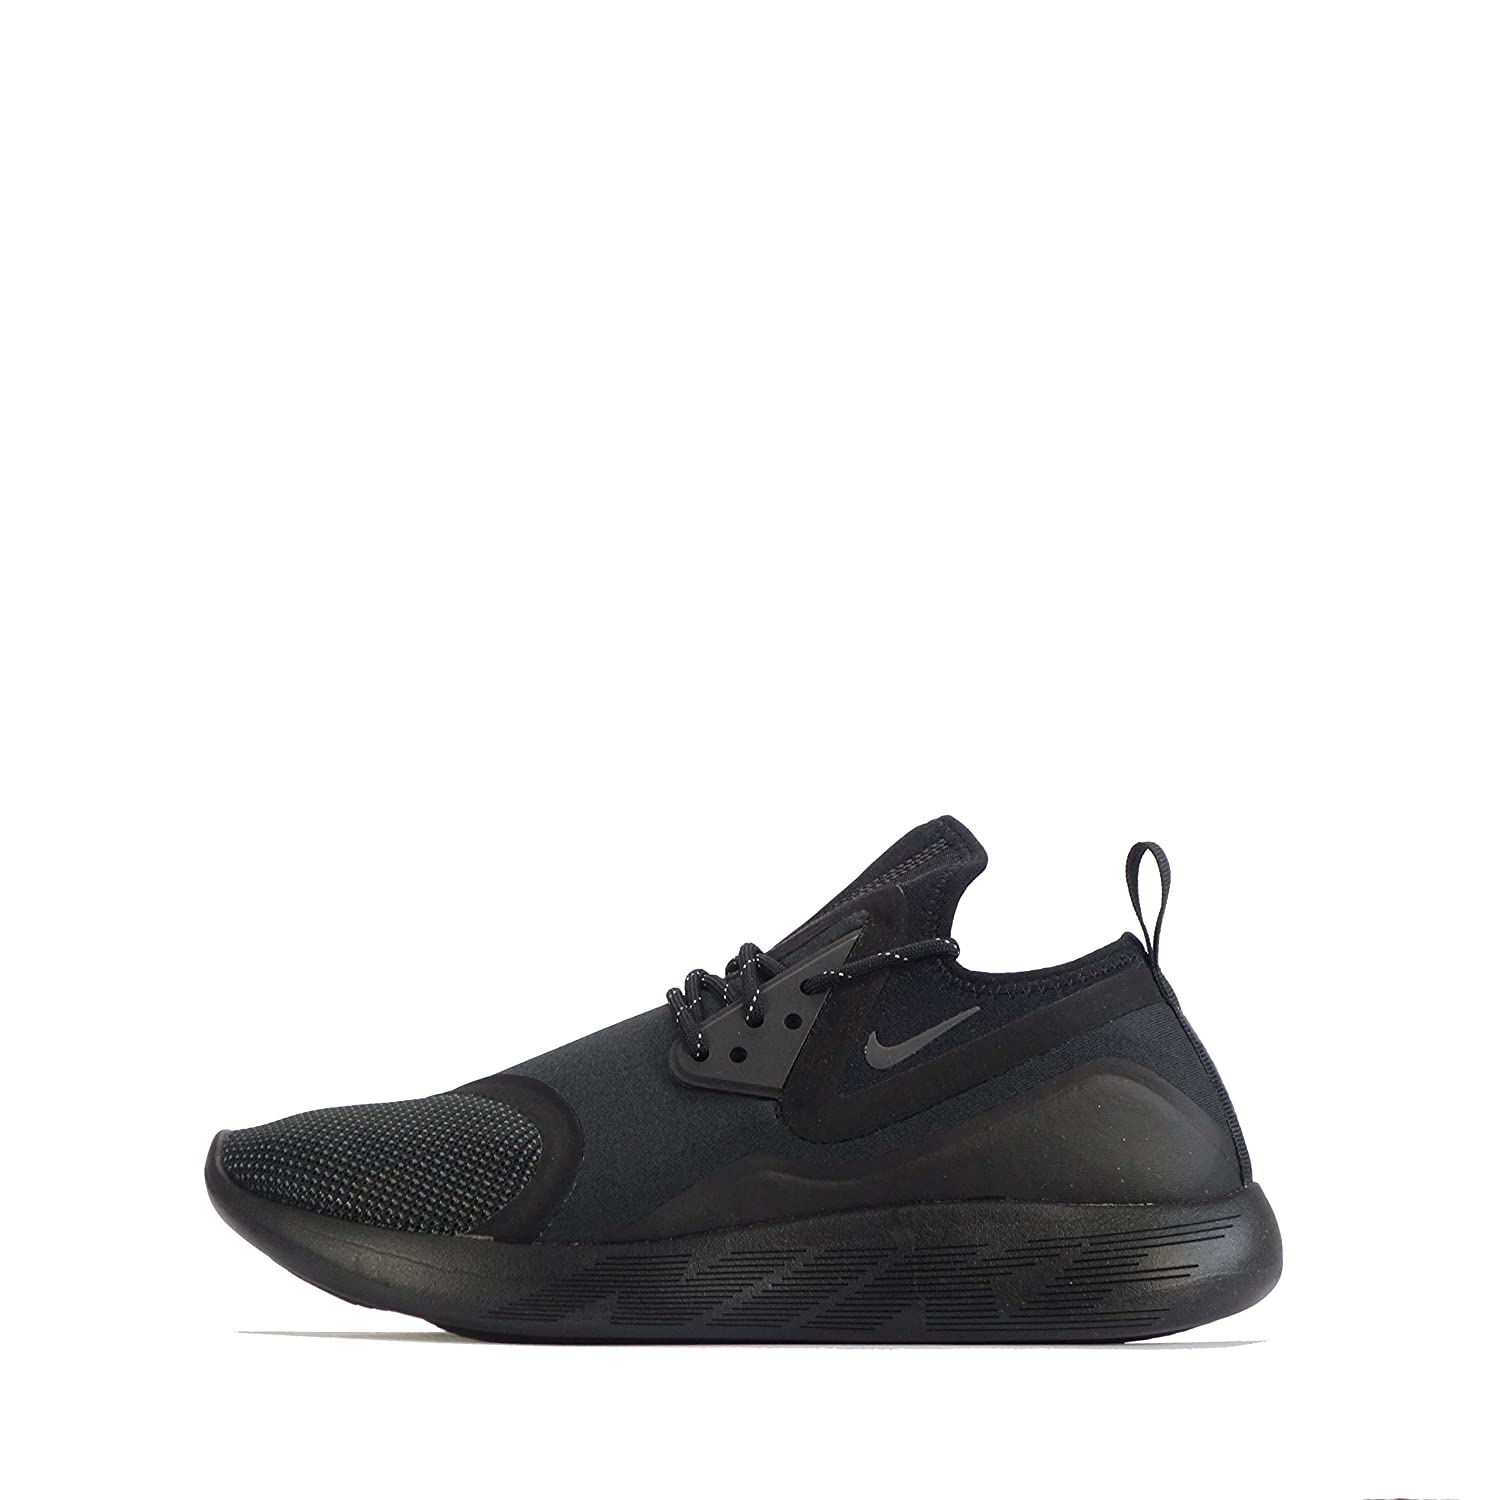 detailed look 31545 f2b13 Nike Lunarcharge Essential Men s Shoes (UK 6.5)  Amazon.co.uk  Shoes   Bags